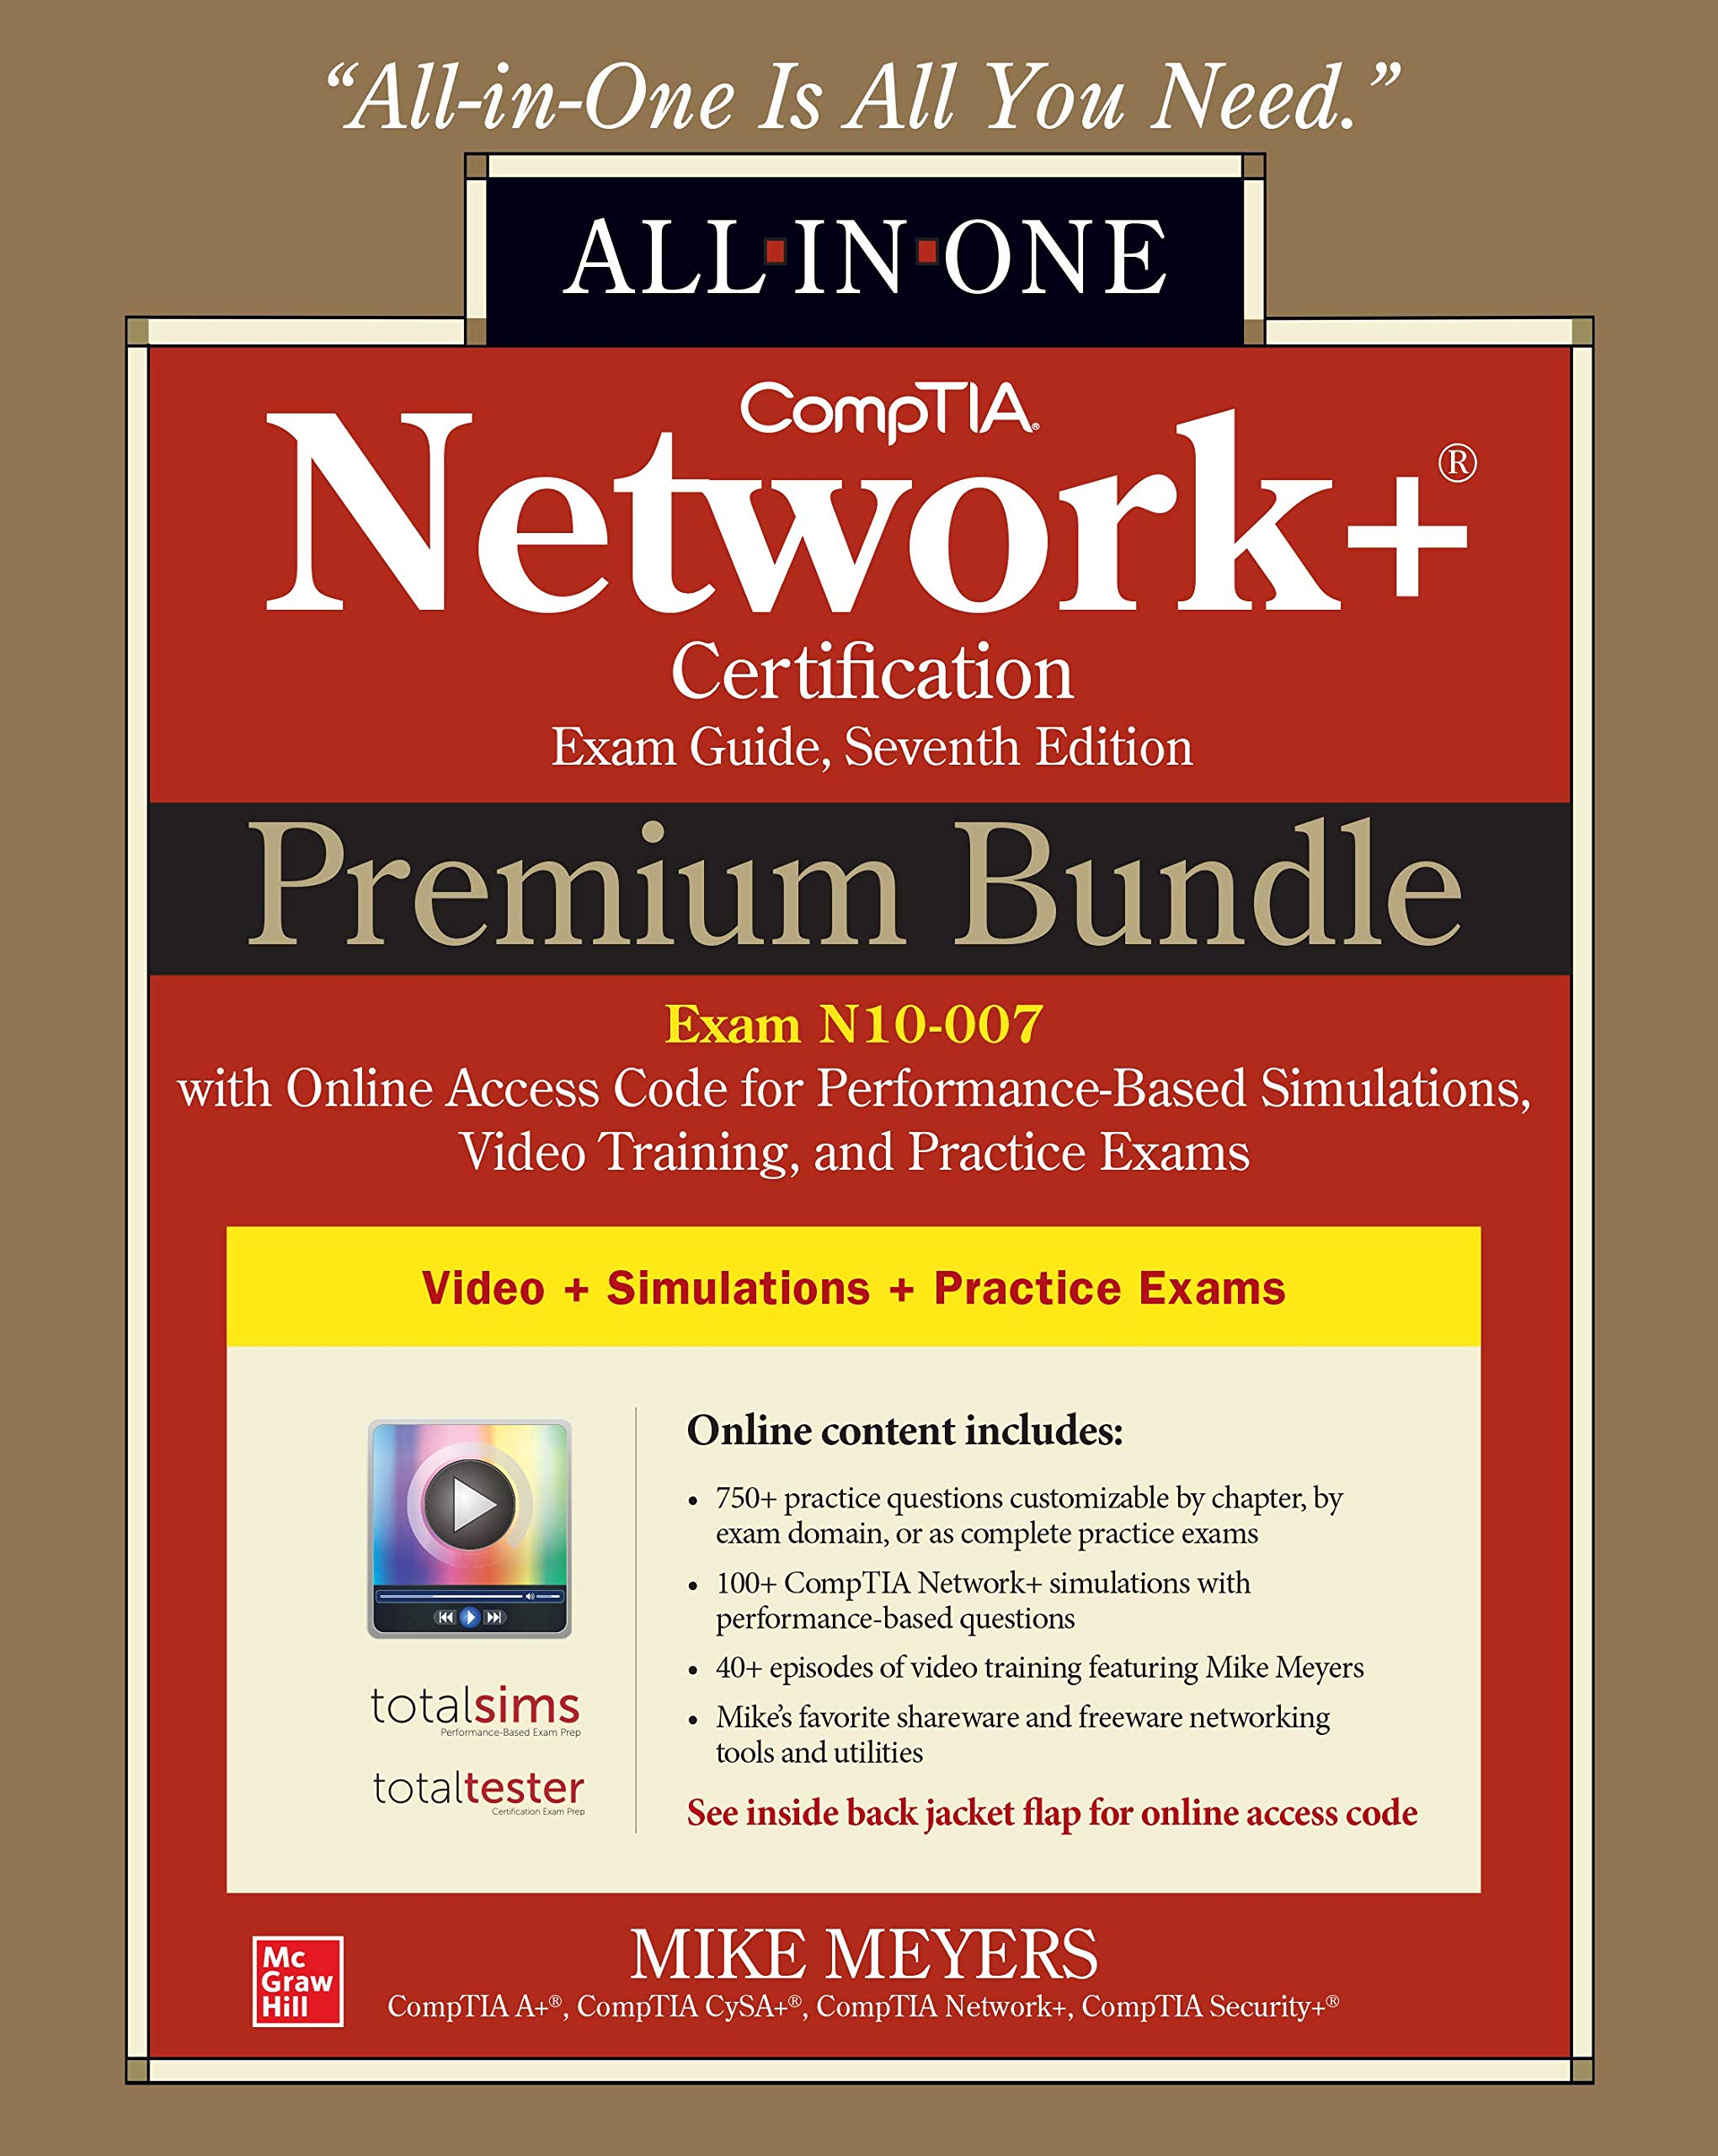 CompTIA Network+ Certification Premium Bundle: All-in-One Exam Guide, Seventh Edition with Online Access Code for Performance-Based Simulations, Video Training, and Practice Exams (Exam N10-007) by McGraw-Hill Education